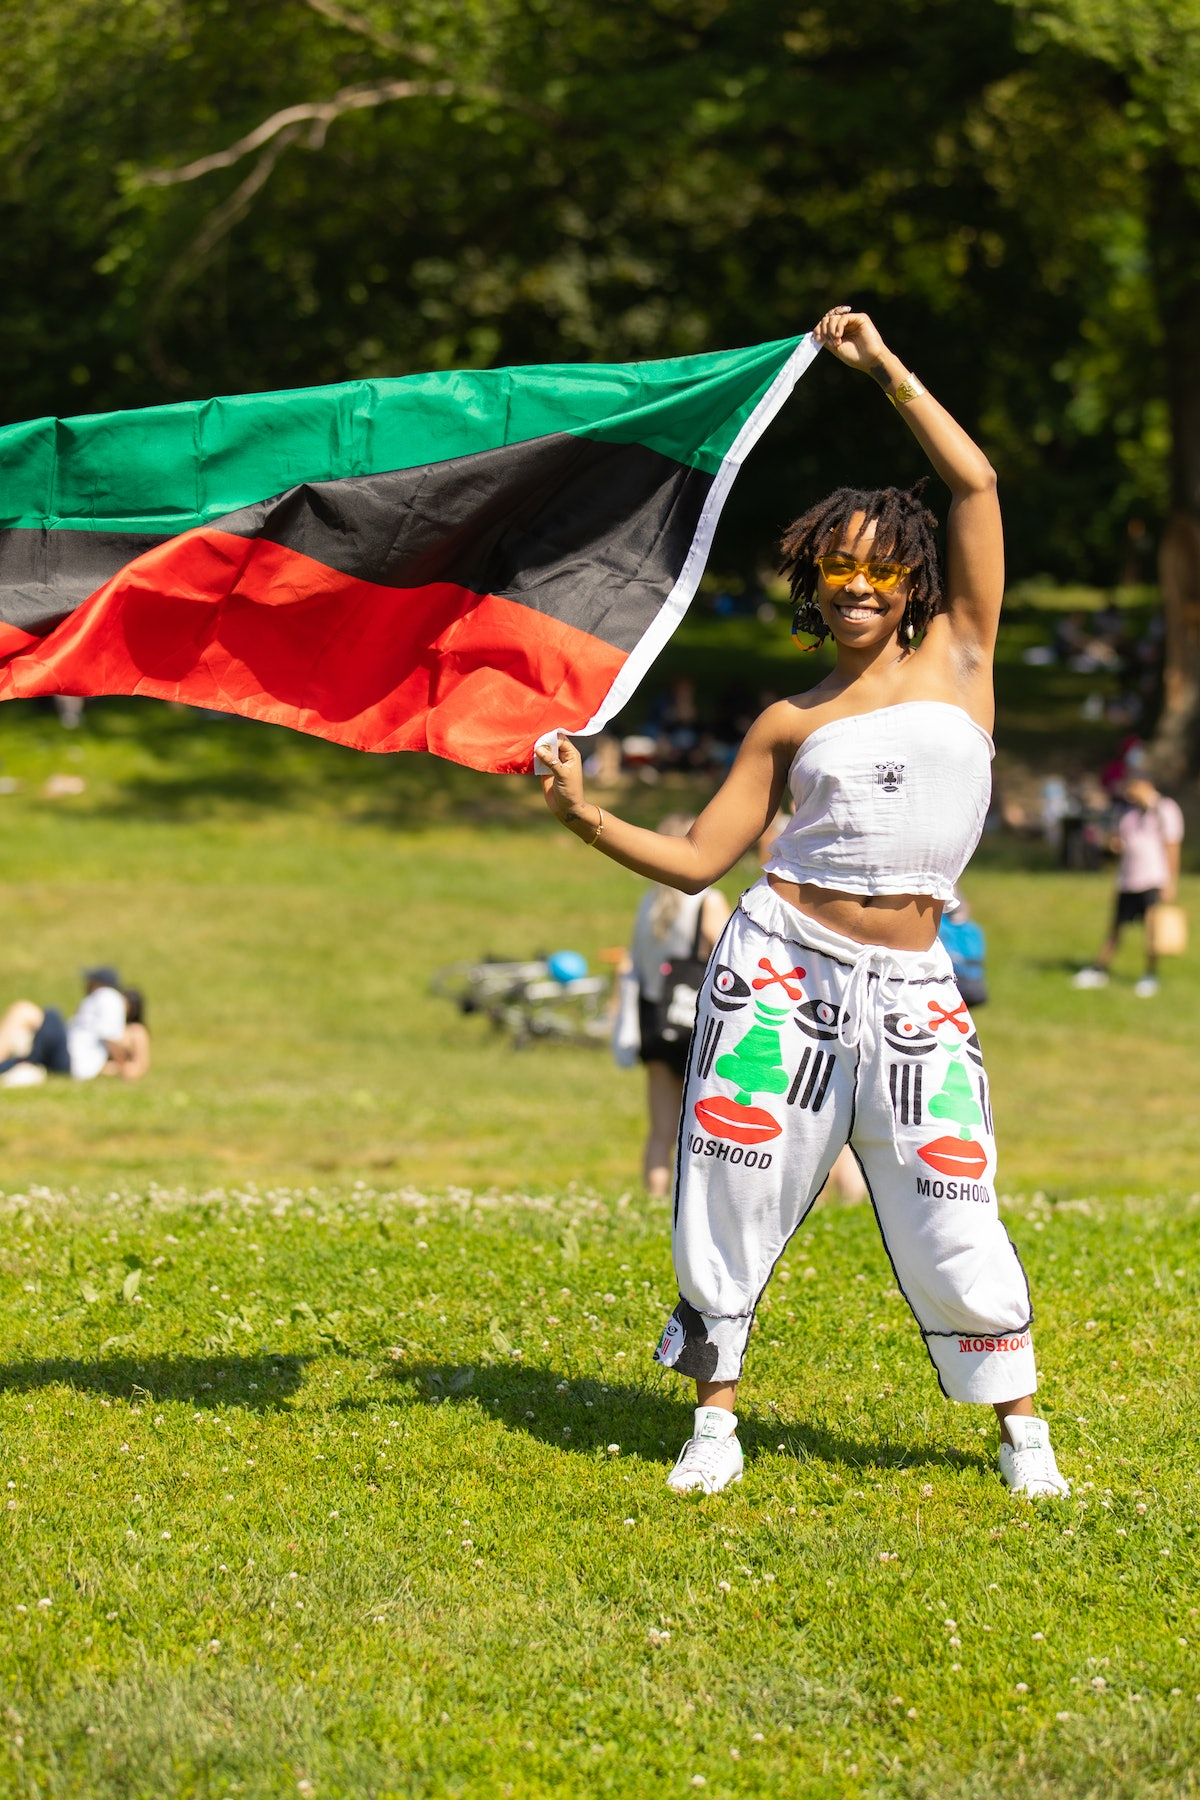 A person celebrating Juneteenth